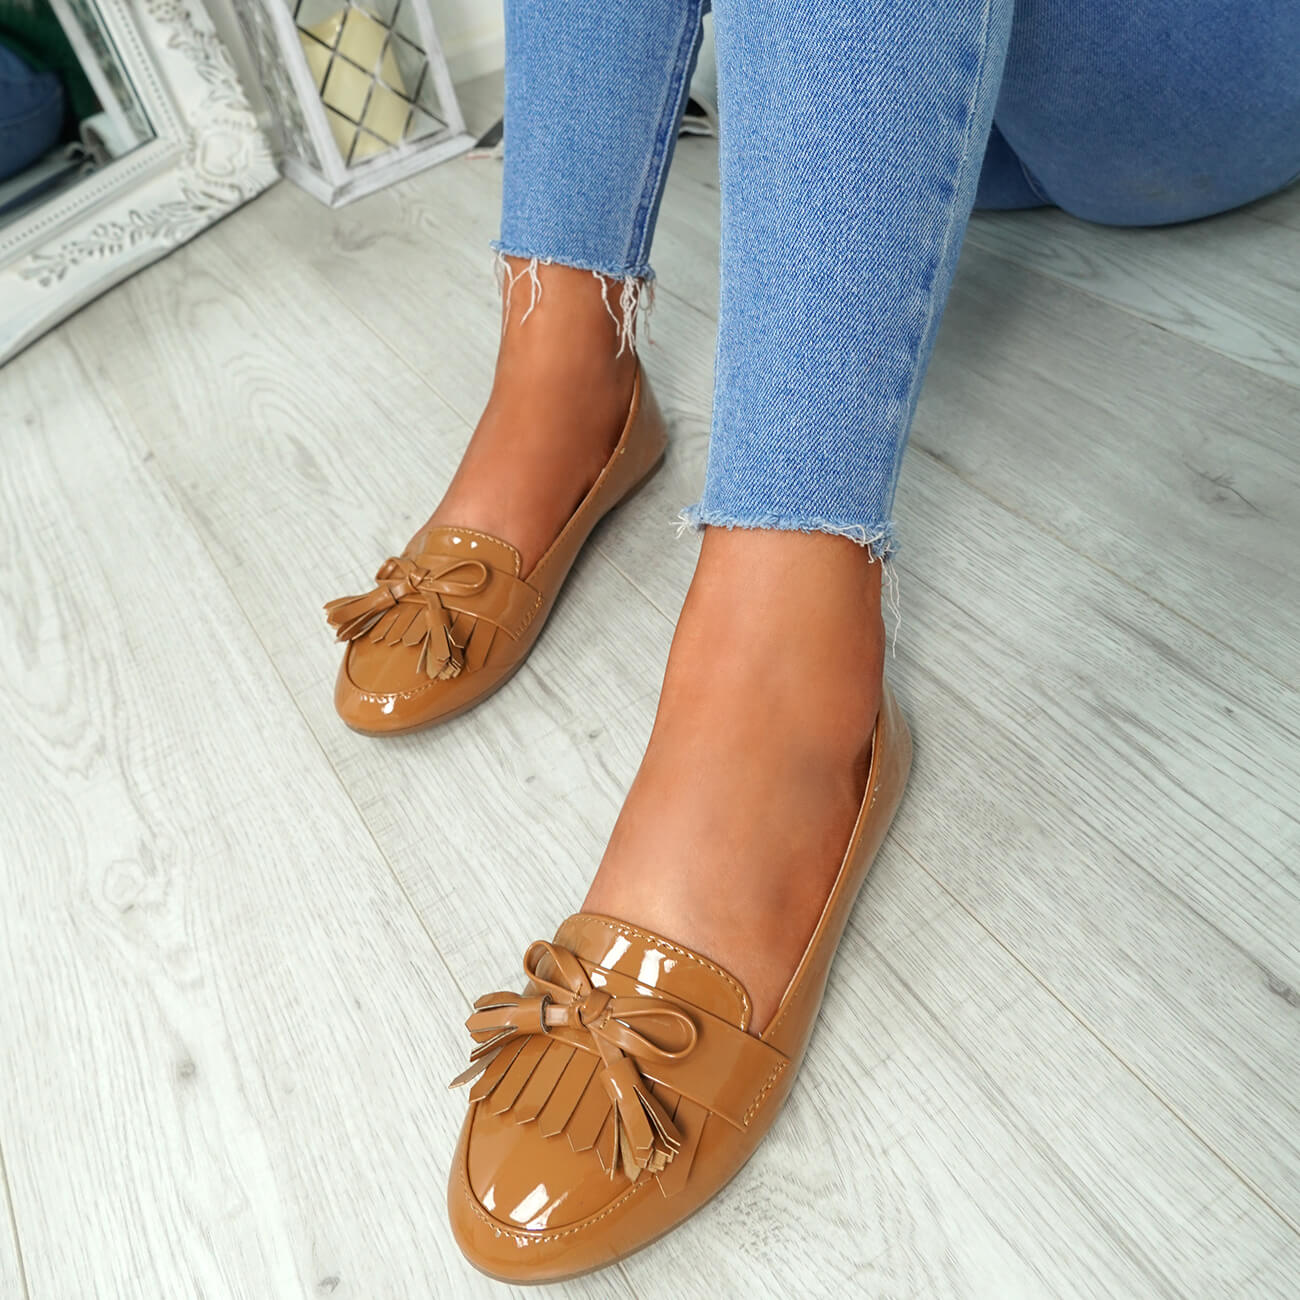 WOMENS-LADIES-FRINGE-BALLERINAS-SLIP-ON-FLAT-DOLLY-PUMPS-CASUAL-SMART-SHOES-SIZE thumbnail 14